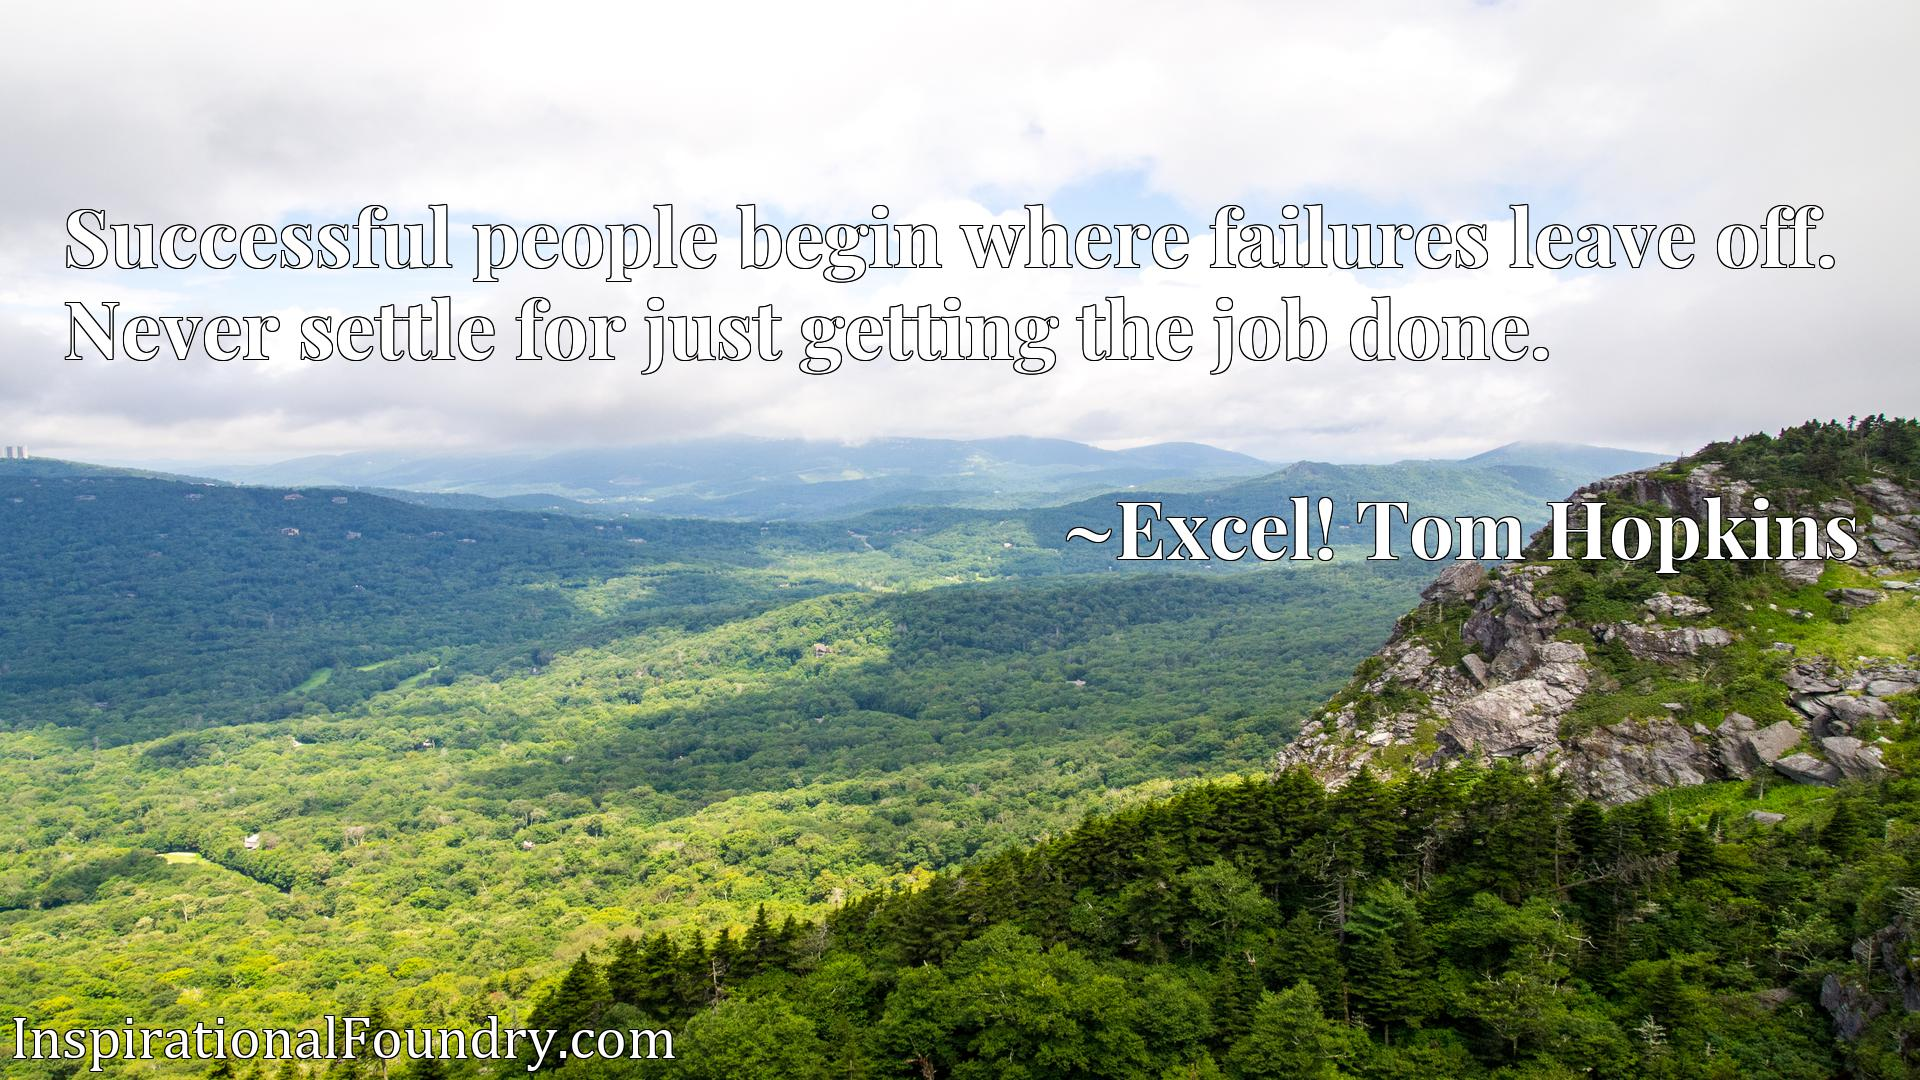 Quote Picture :Successful people begin where failures leave off. Never settle for just getting the job done.